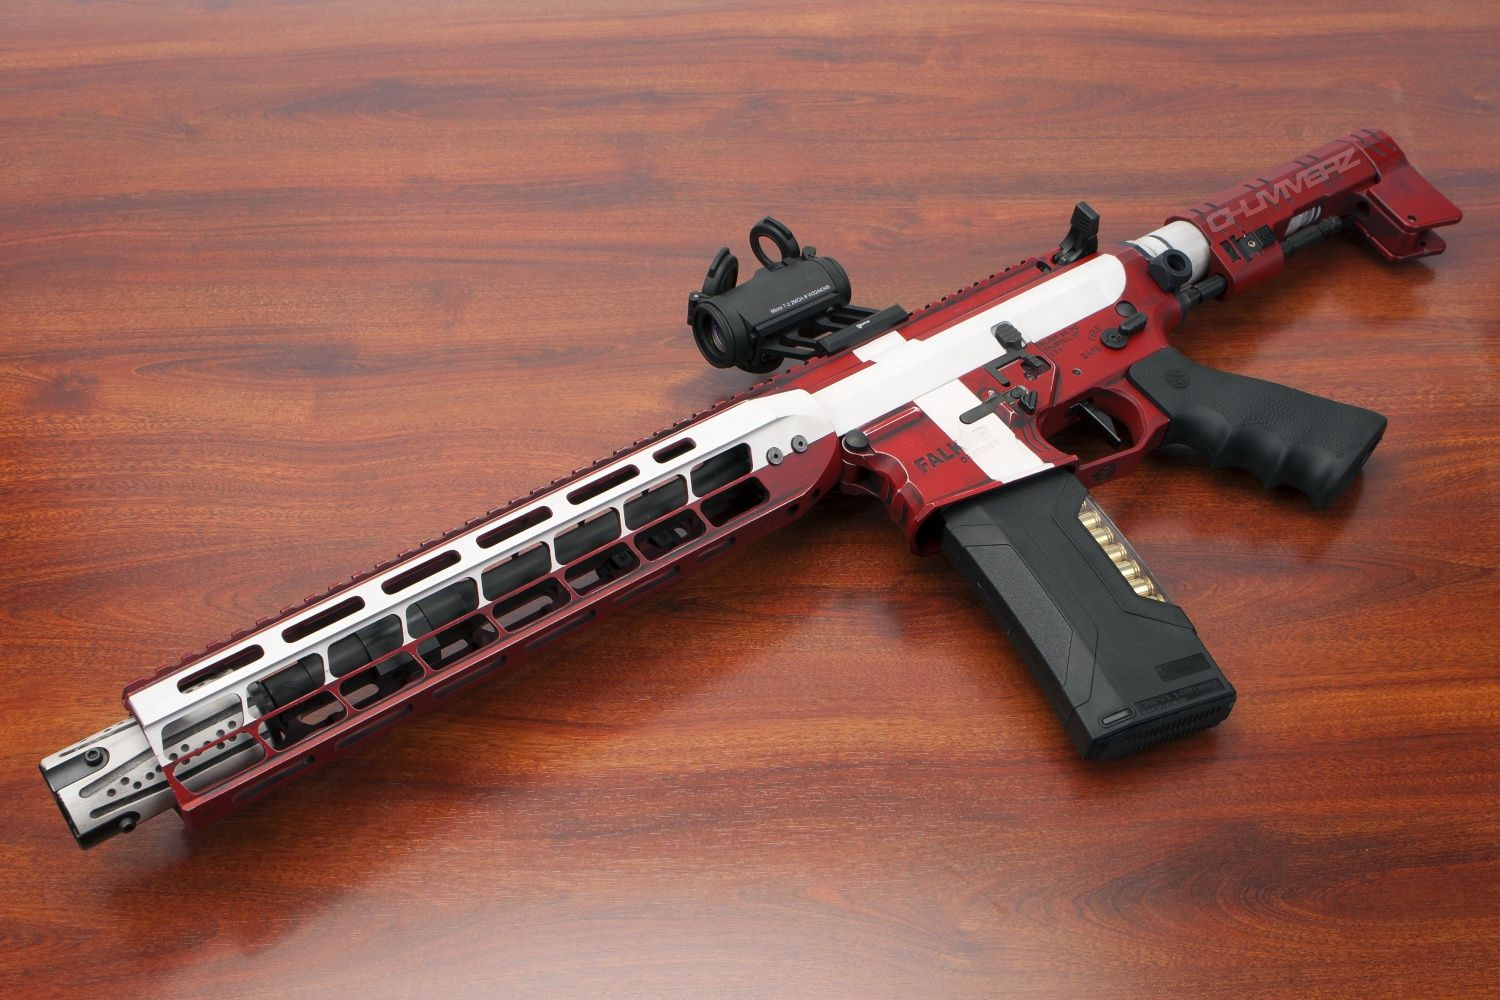 Pin by Steve f on firearms and other cool weapons